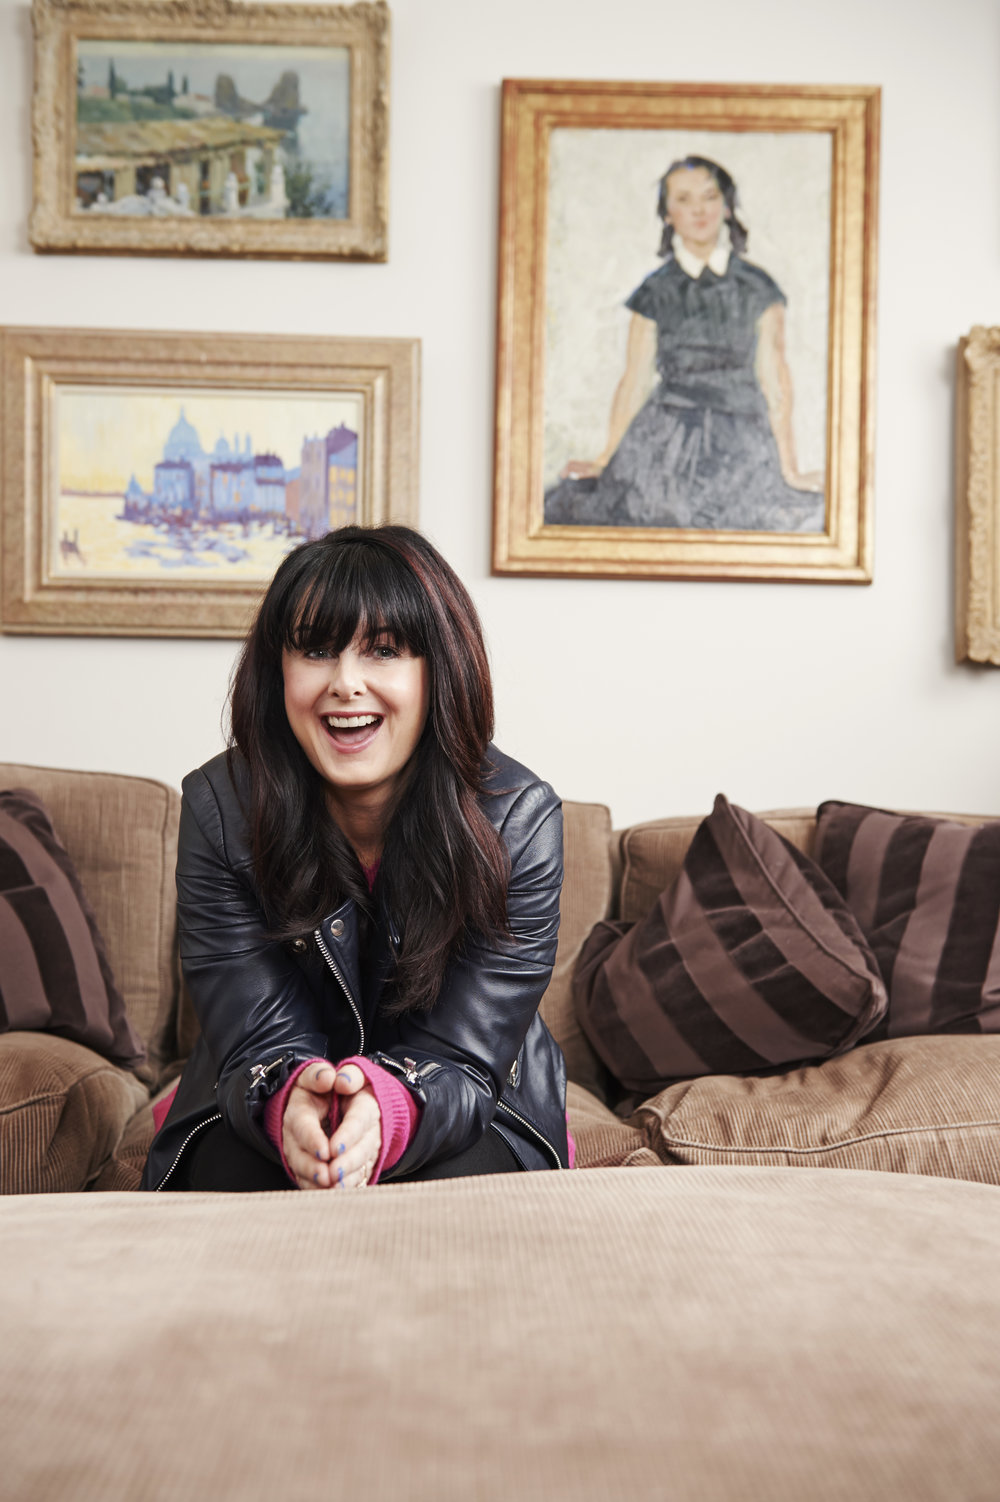 Celebrating Marian Keyes, 21 years as an international literary superstar today